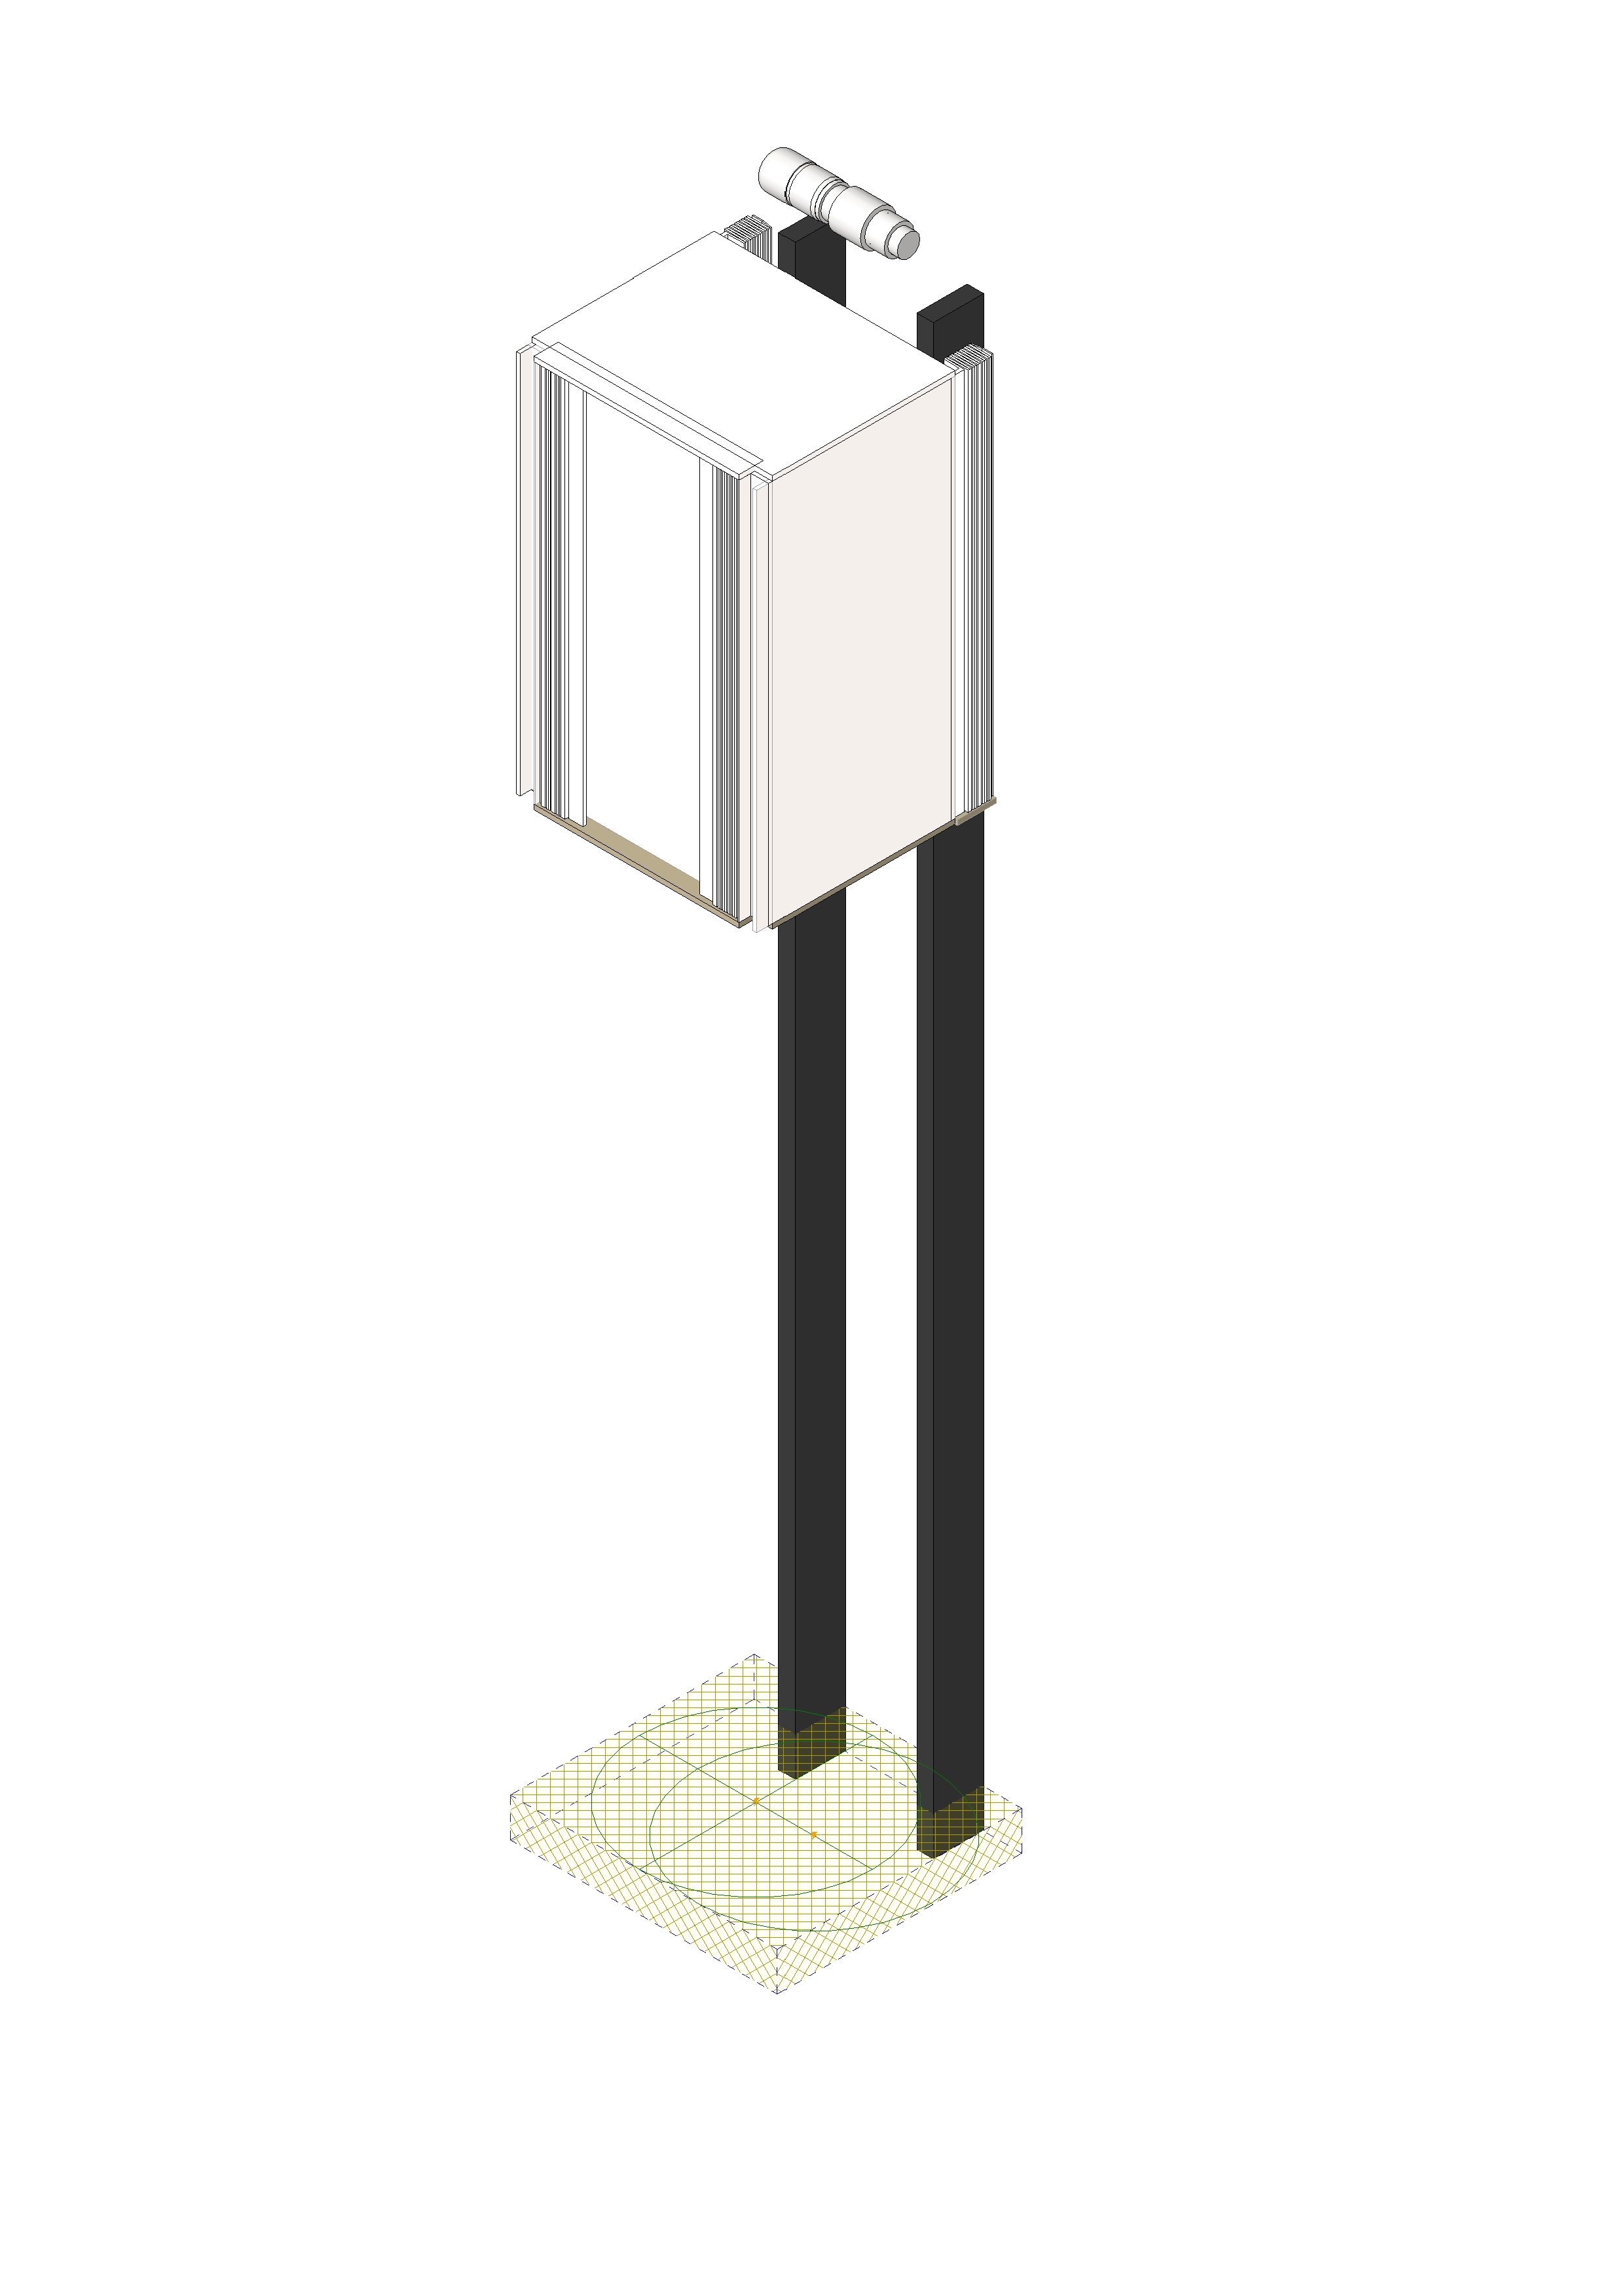 Building Elevator Systems